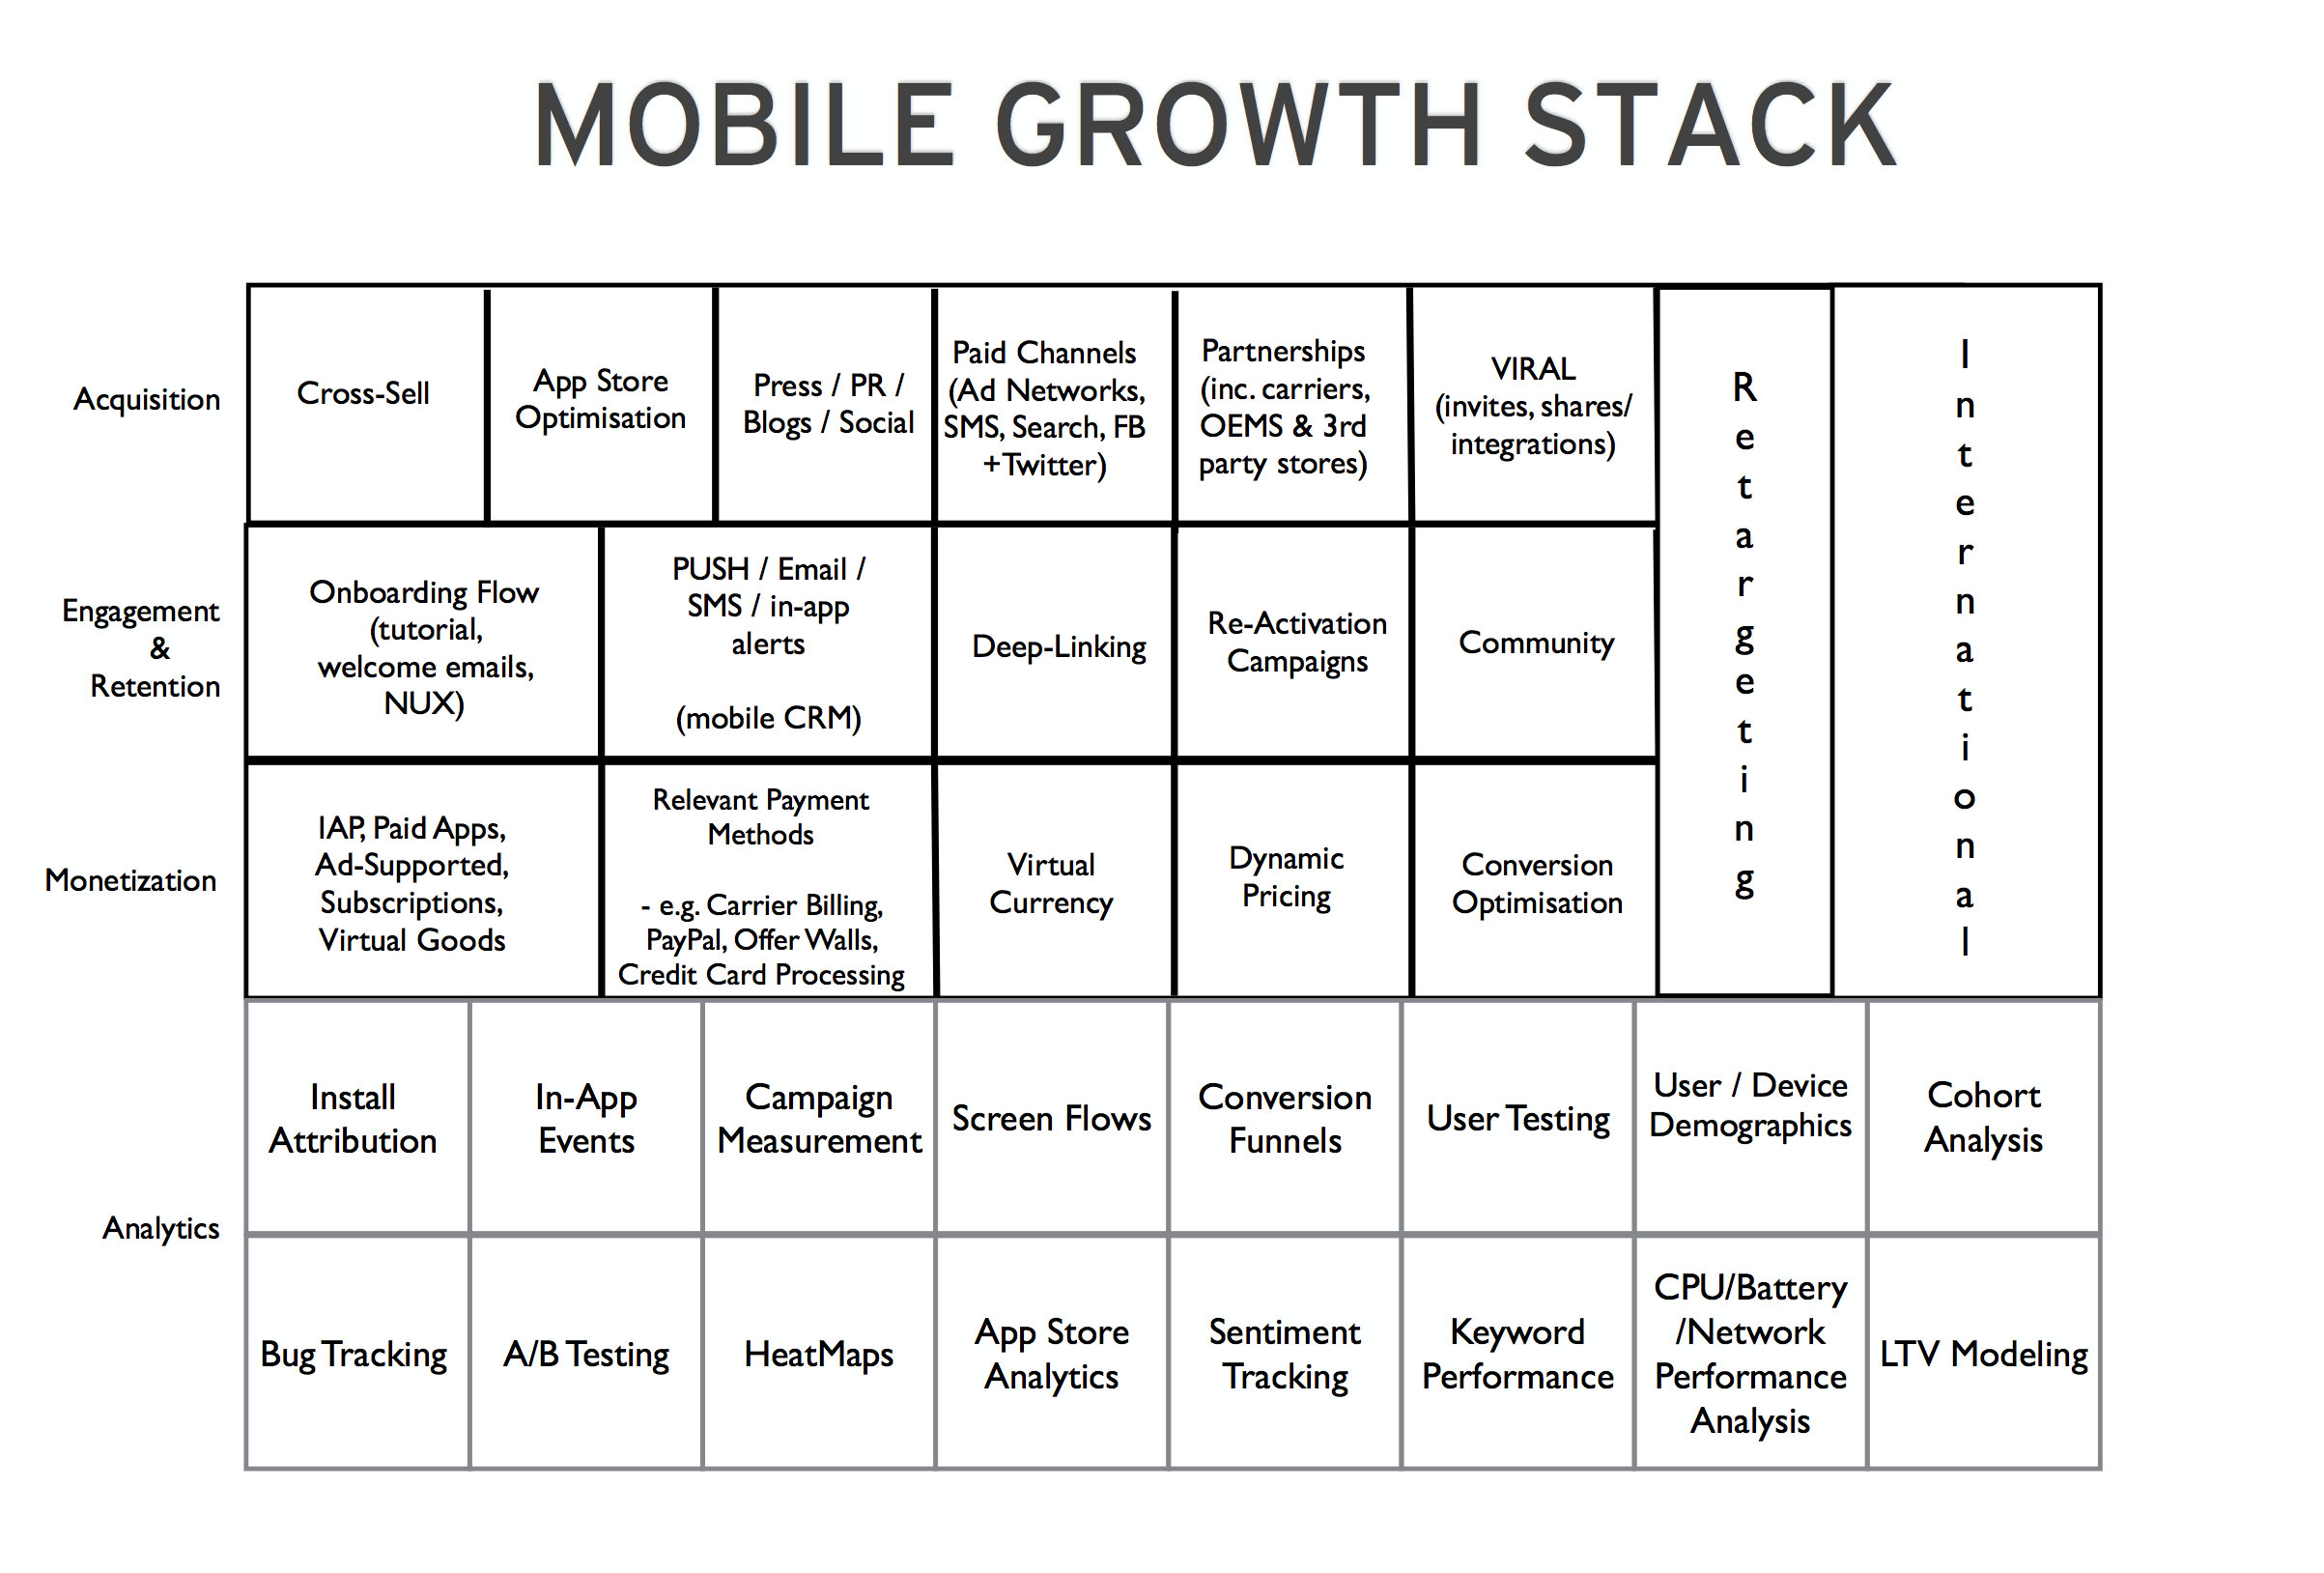 The-Mobile-Growth-Stack-by-Andy-Carvell-graphic-chart